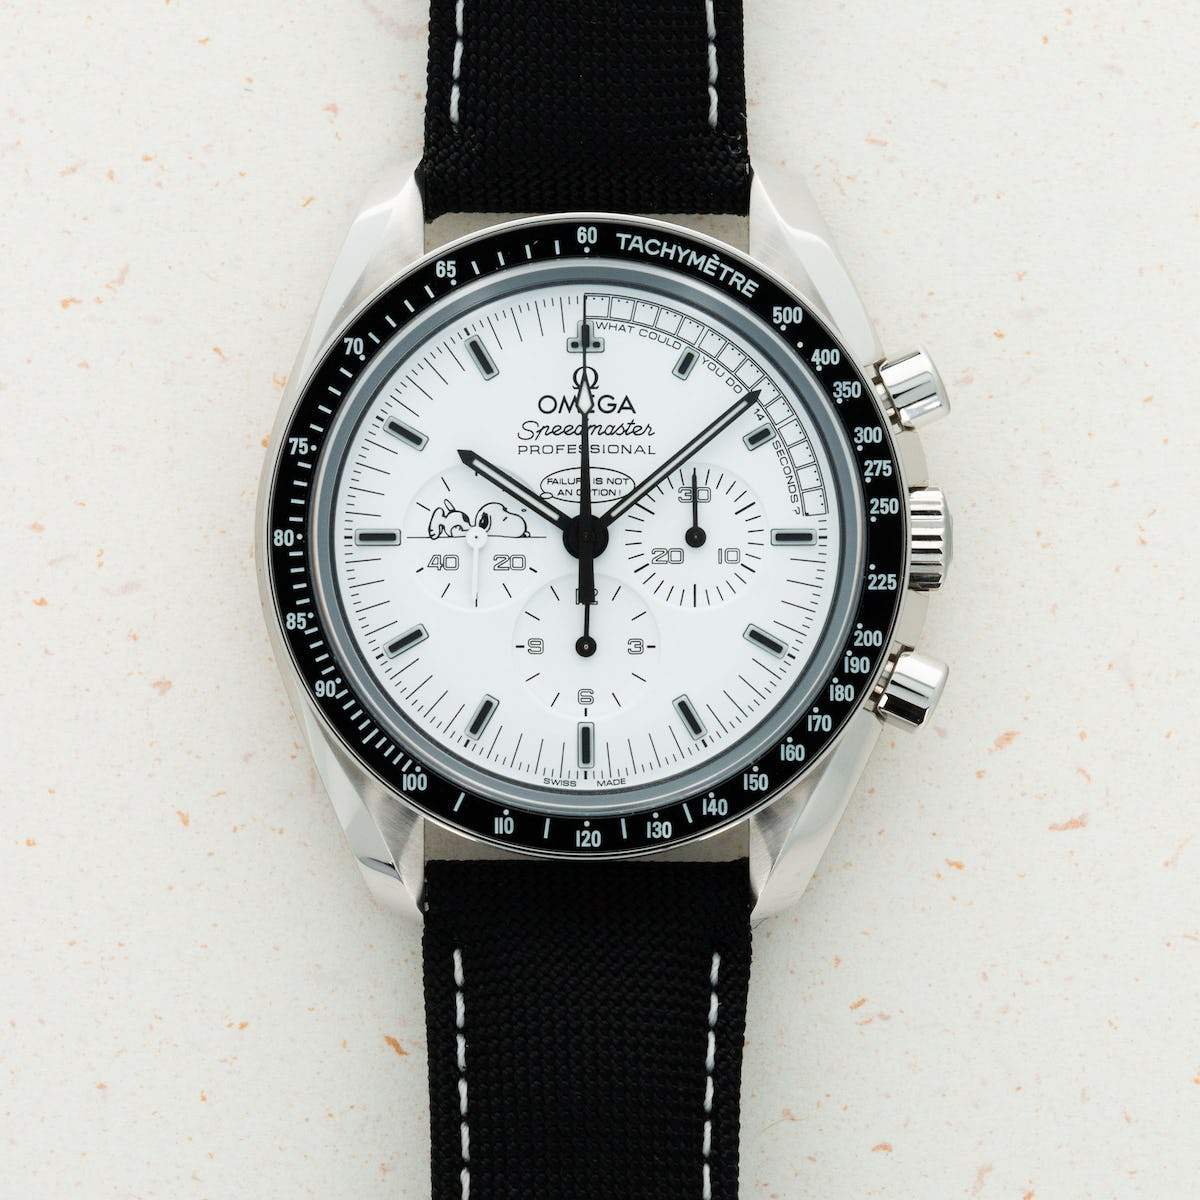 Thumbnail for Omega Speedmaster Professional Silver Snoopy Award 45th Anniversary 311.32.42.30.04.003